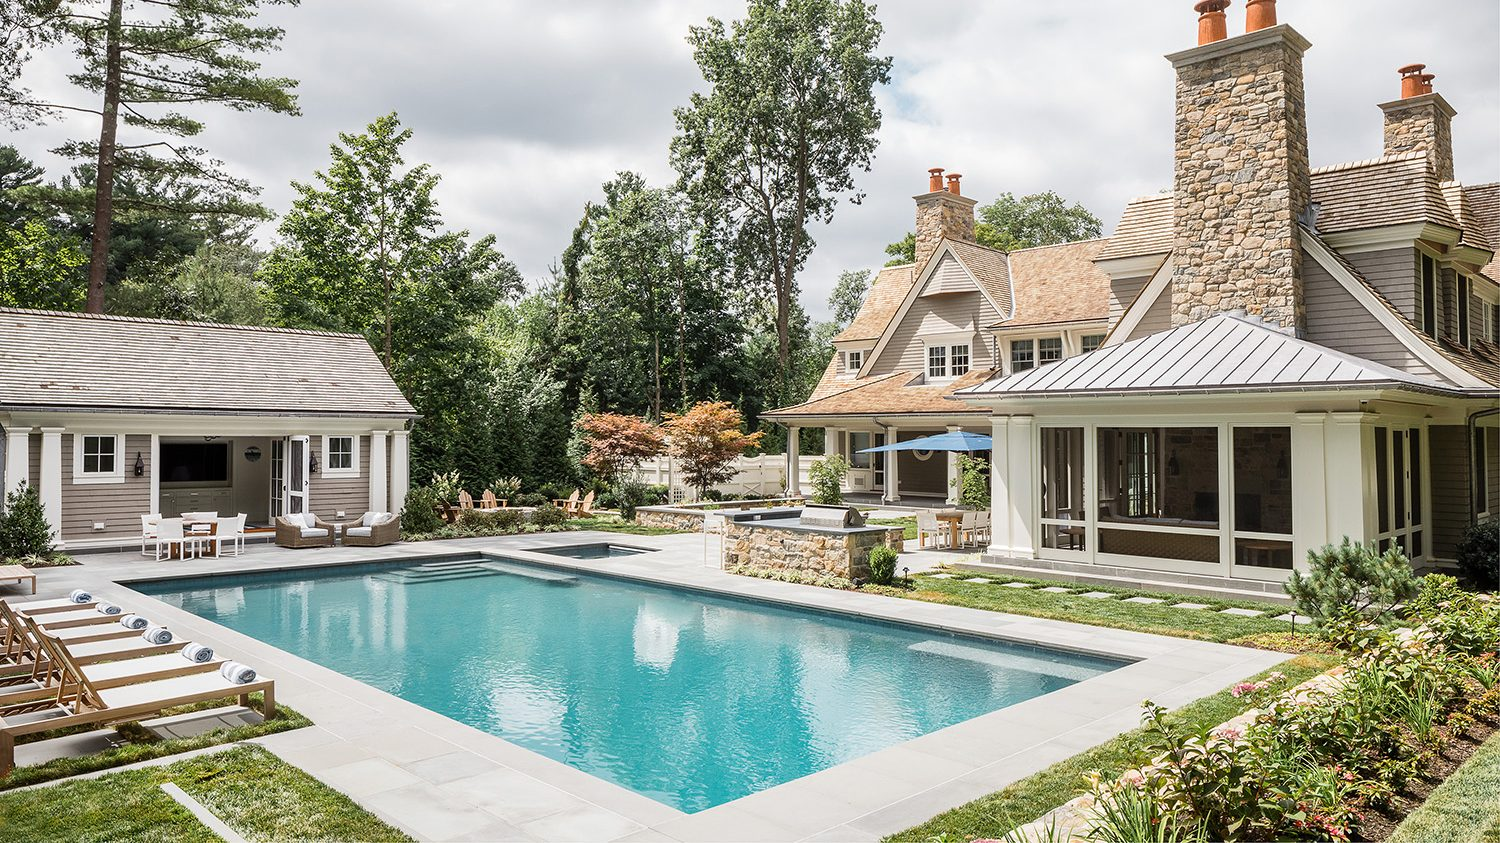 Outdoor space with poolside lounge chairs, screened porch and pool house